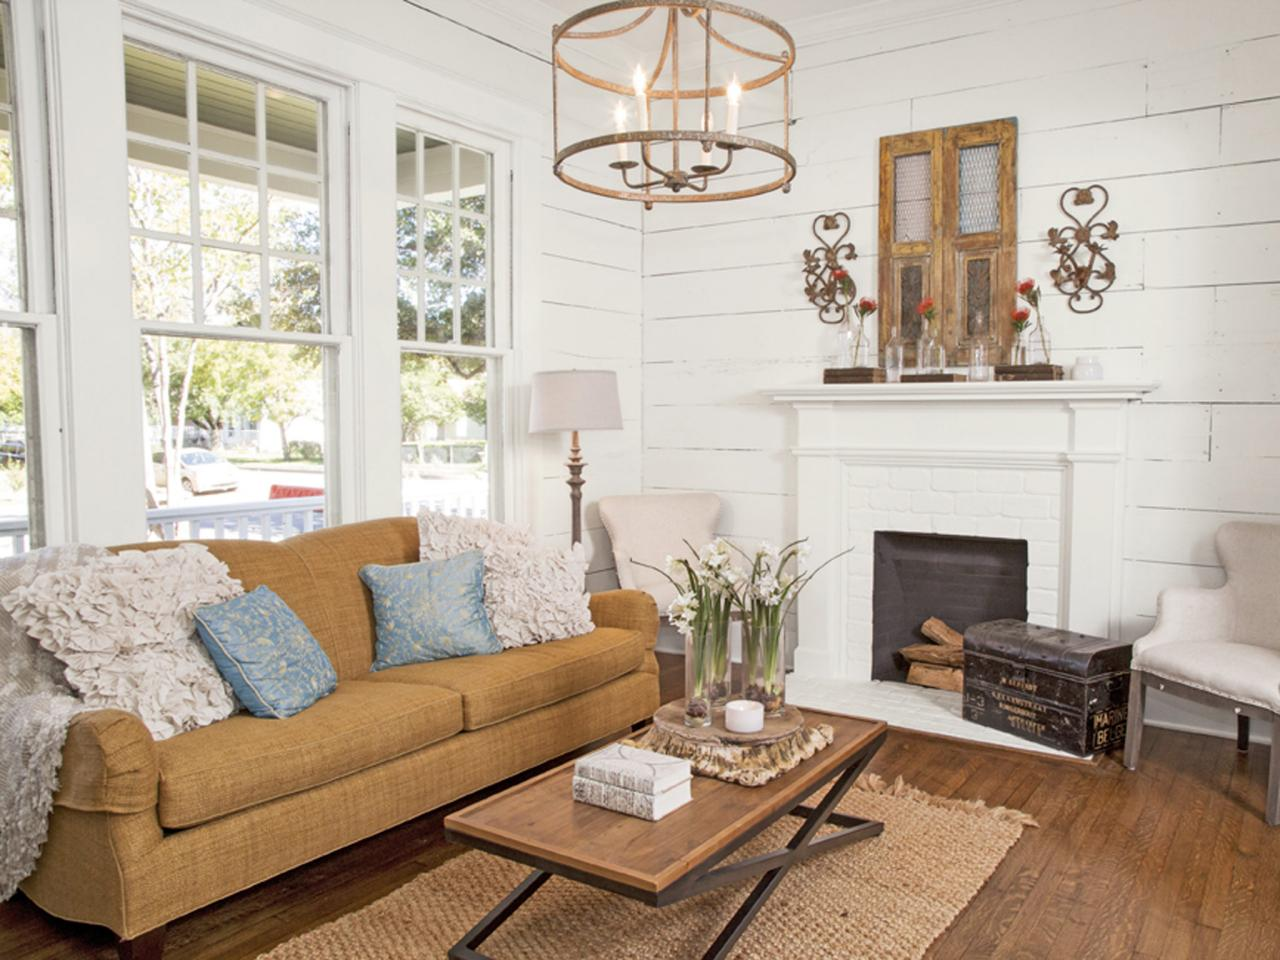 Joanna Gaines Home Design get the fixer upper look 43 ways to steal joannas style hgtvs fixer upper with chip and joanna gaines hgtv Introducing Hgtvs Fixer Upper Star Joanna Gaines Hgtvs Decorating Design Blog Hgtv